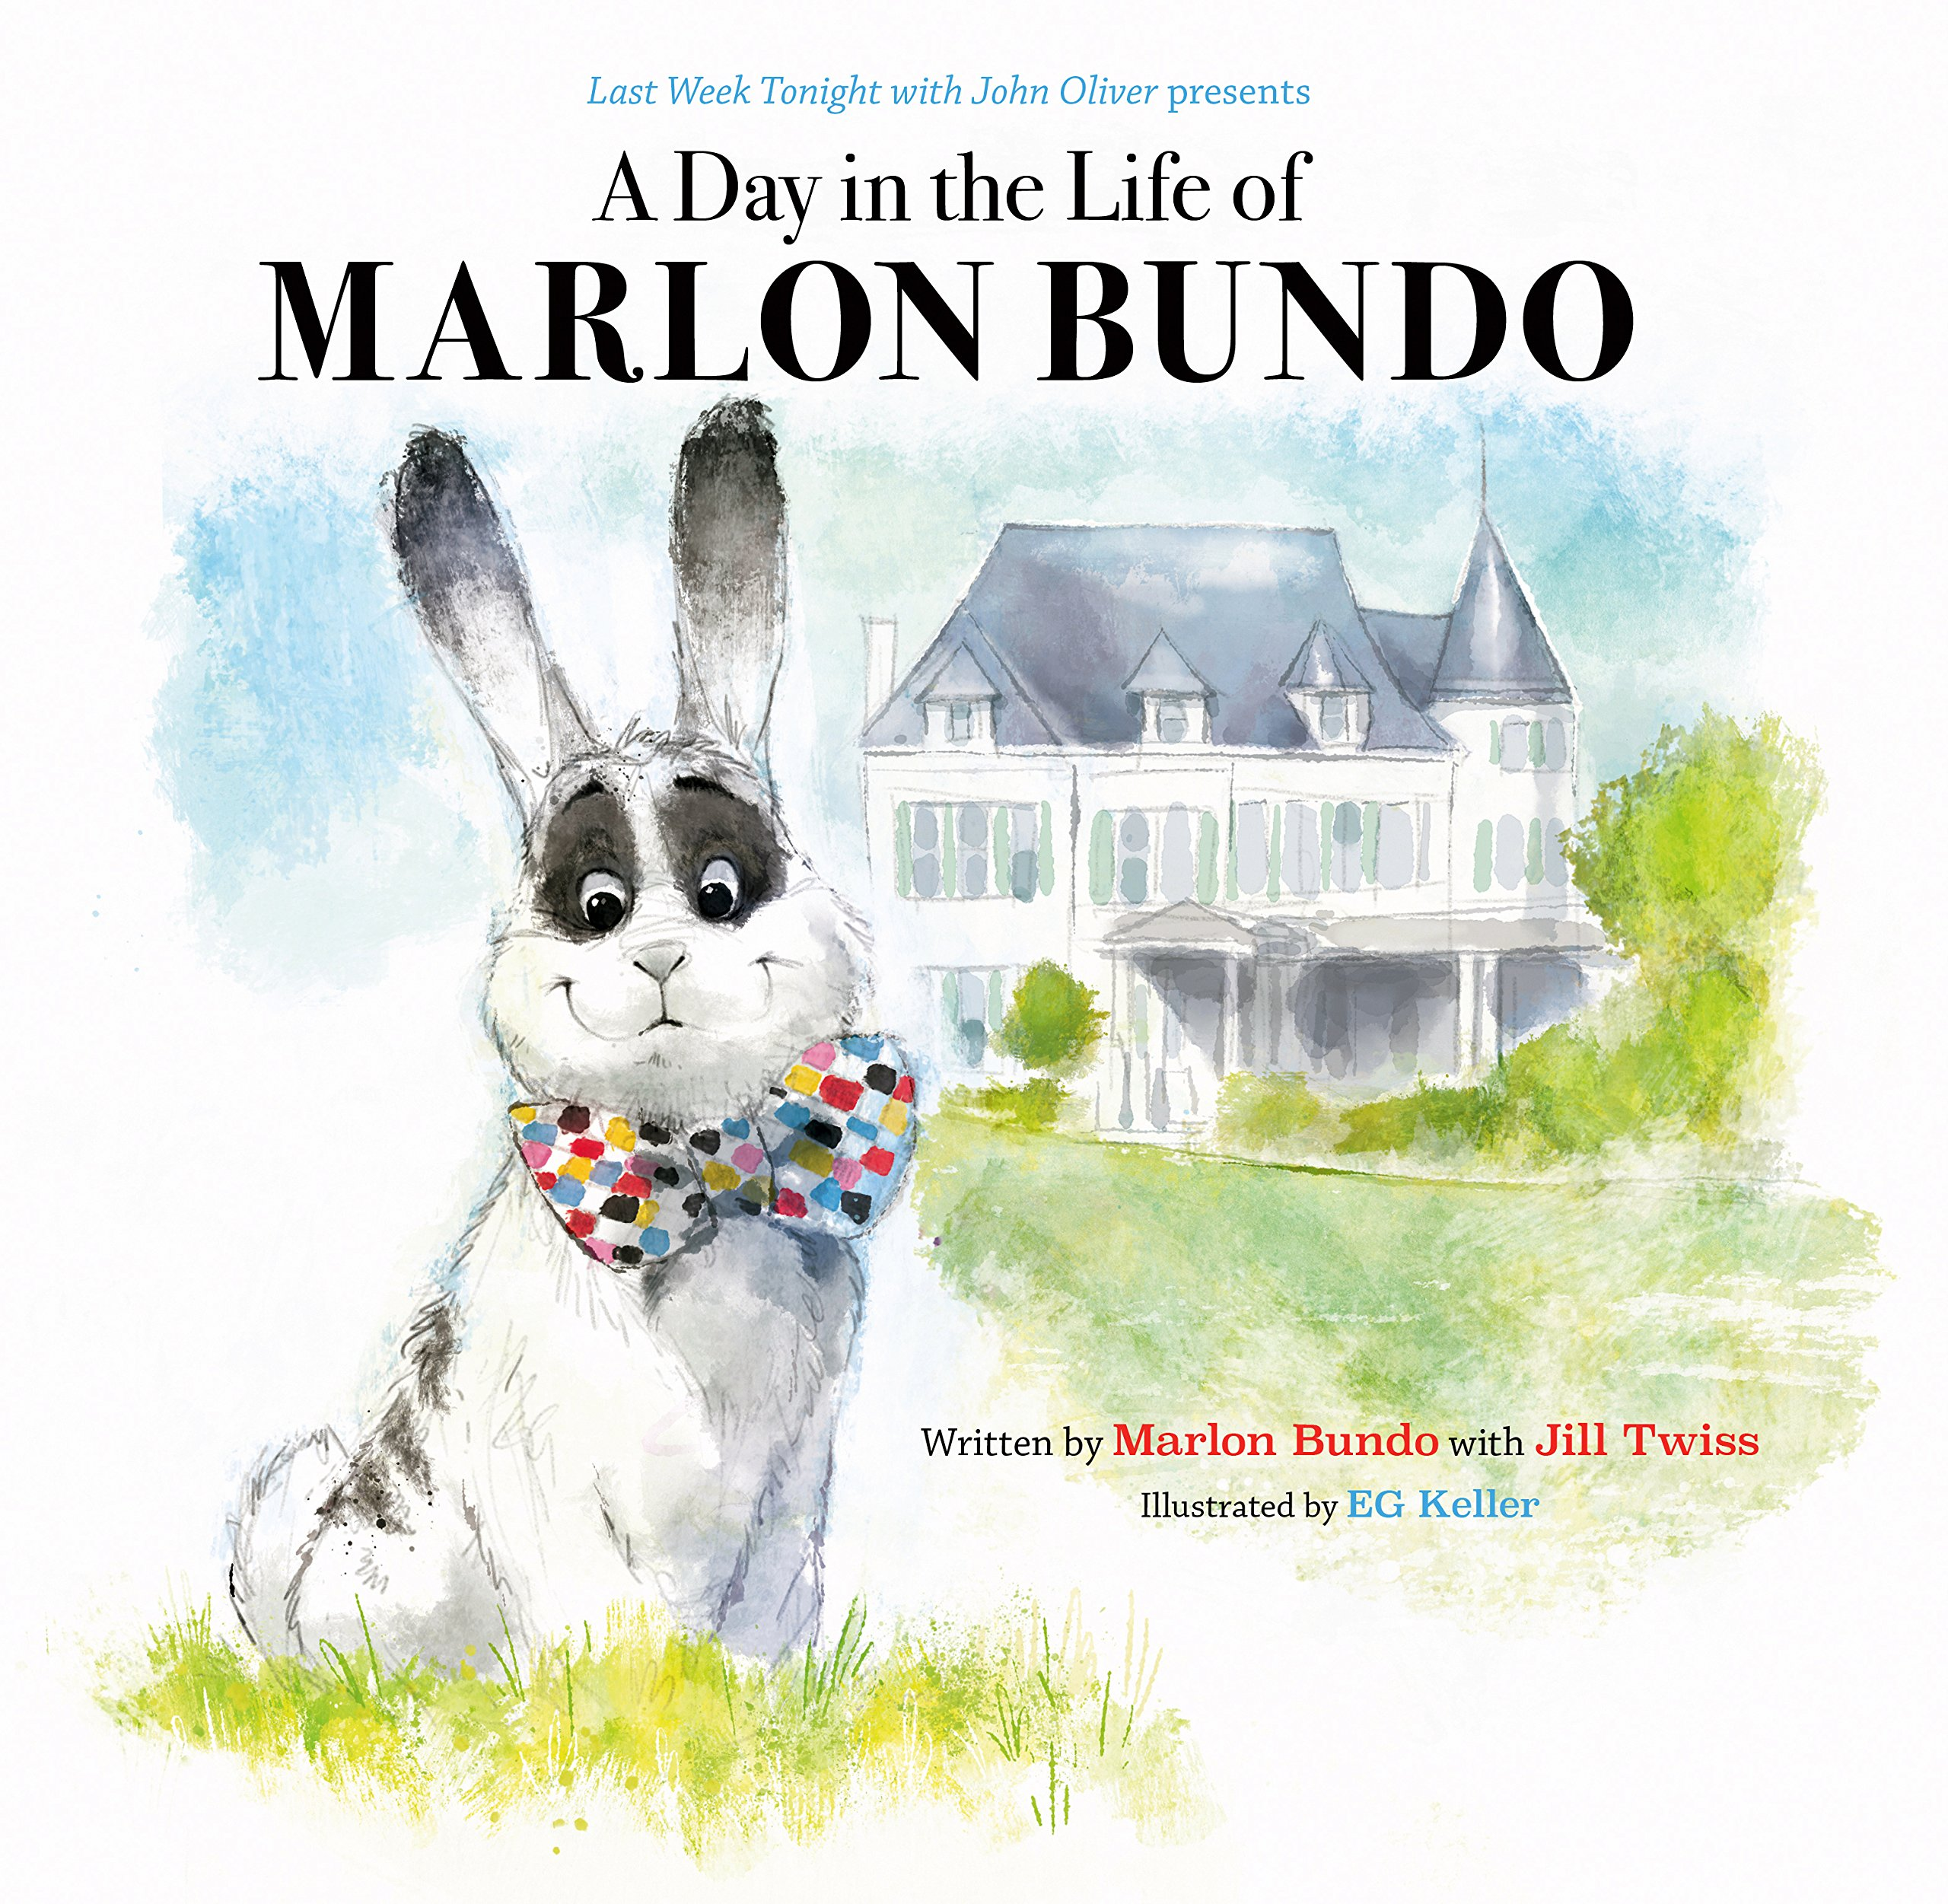 A Day in the Life of Marlon Bundo: 60¢